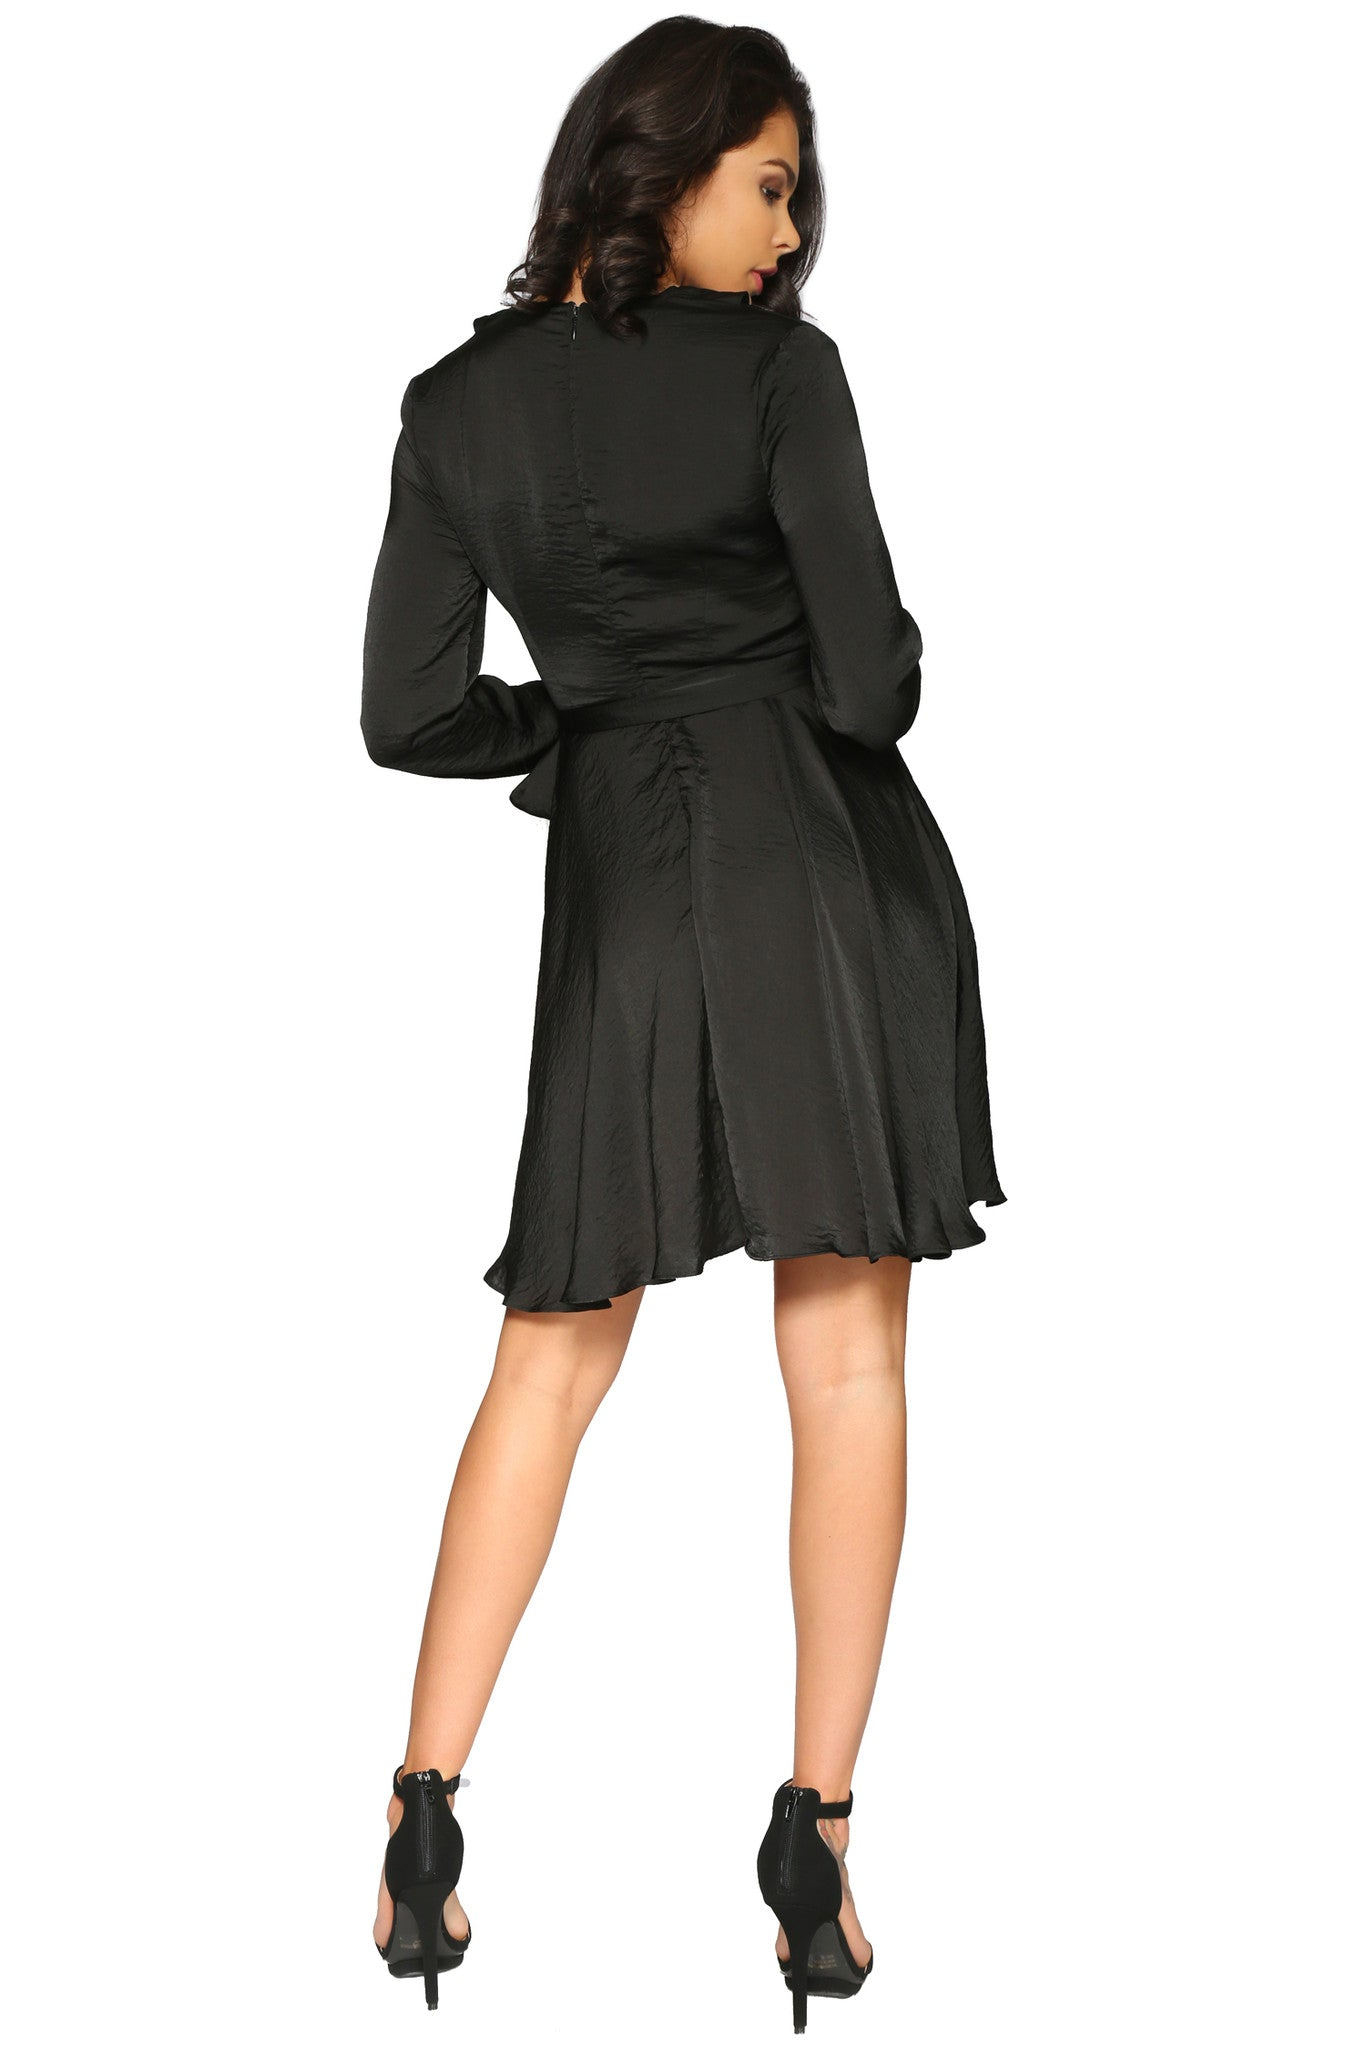 MARI DRESS BLACK GLAM ENVY BACK PROFILE